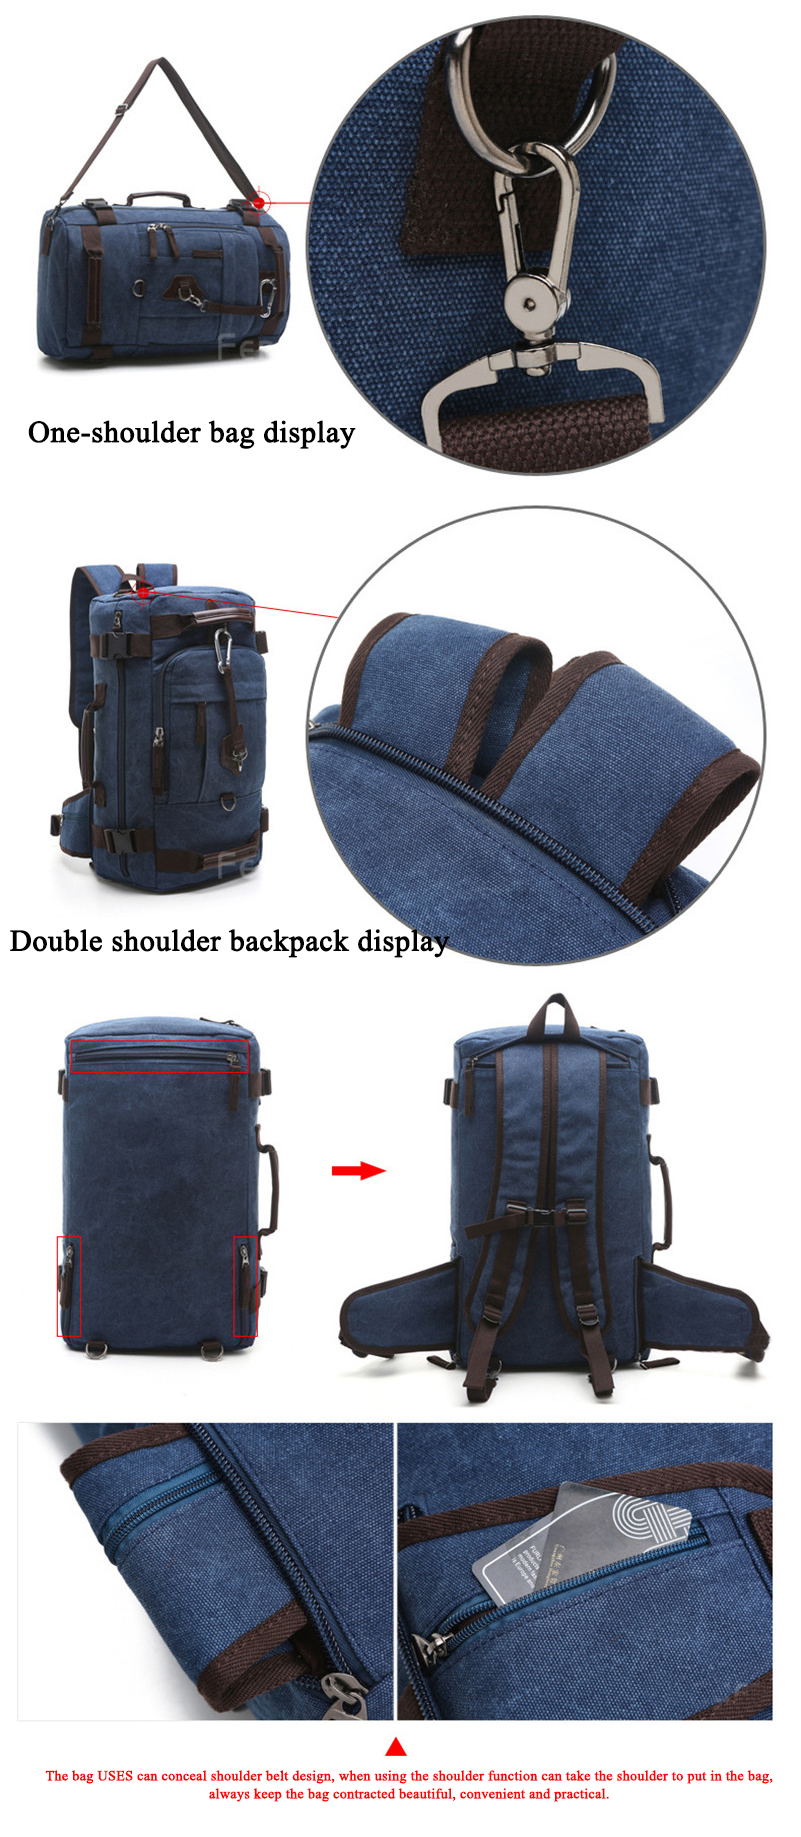 photos showing the materials of a blue navy rucksack and its anti-theft pockets